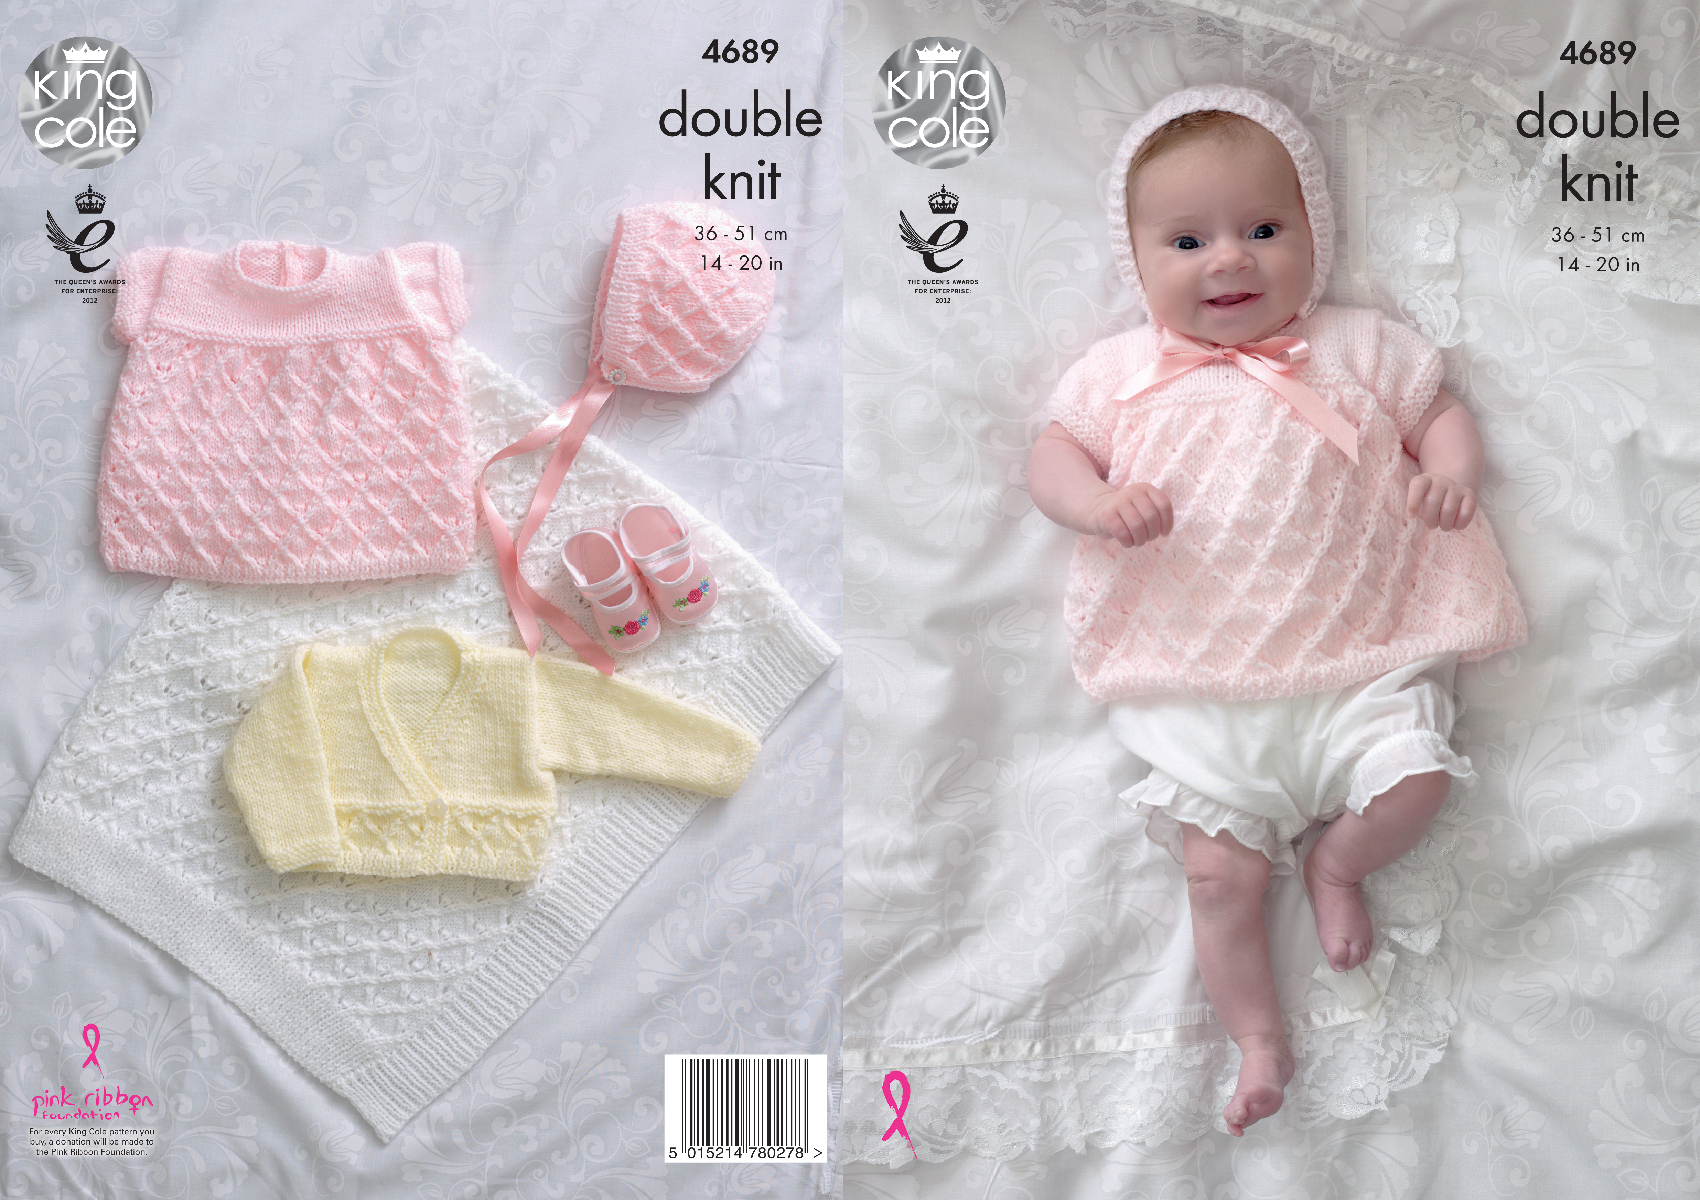 Knitting Pattern For Angel Blanket : King Cole Baby Double Knitting Pattern Angel Top Cardigan ...